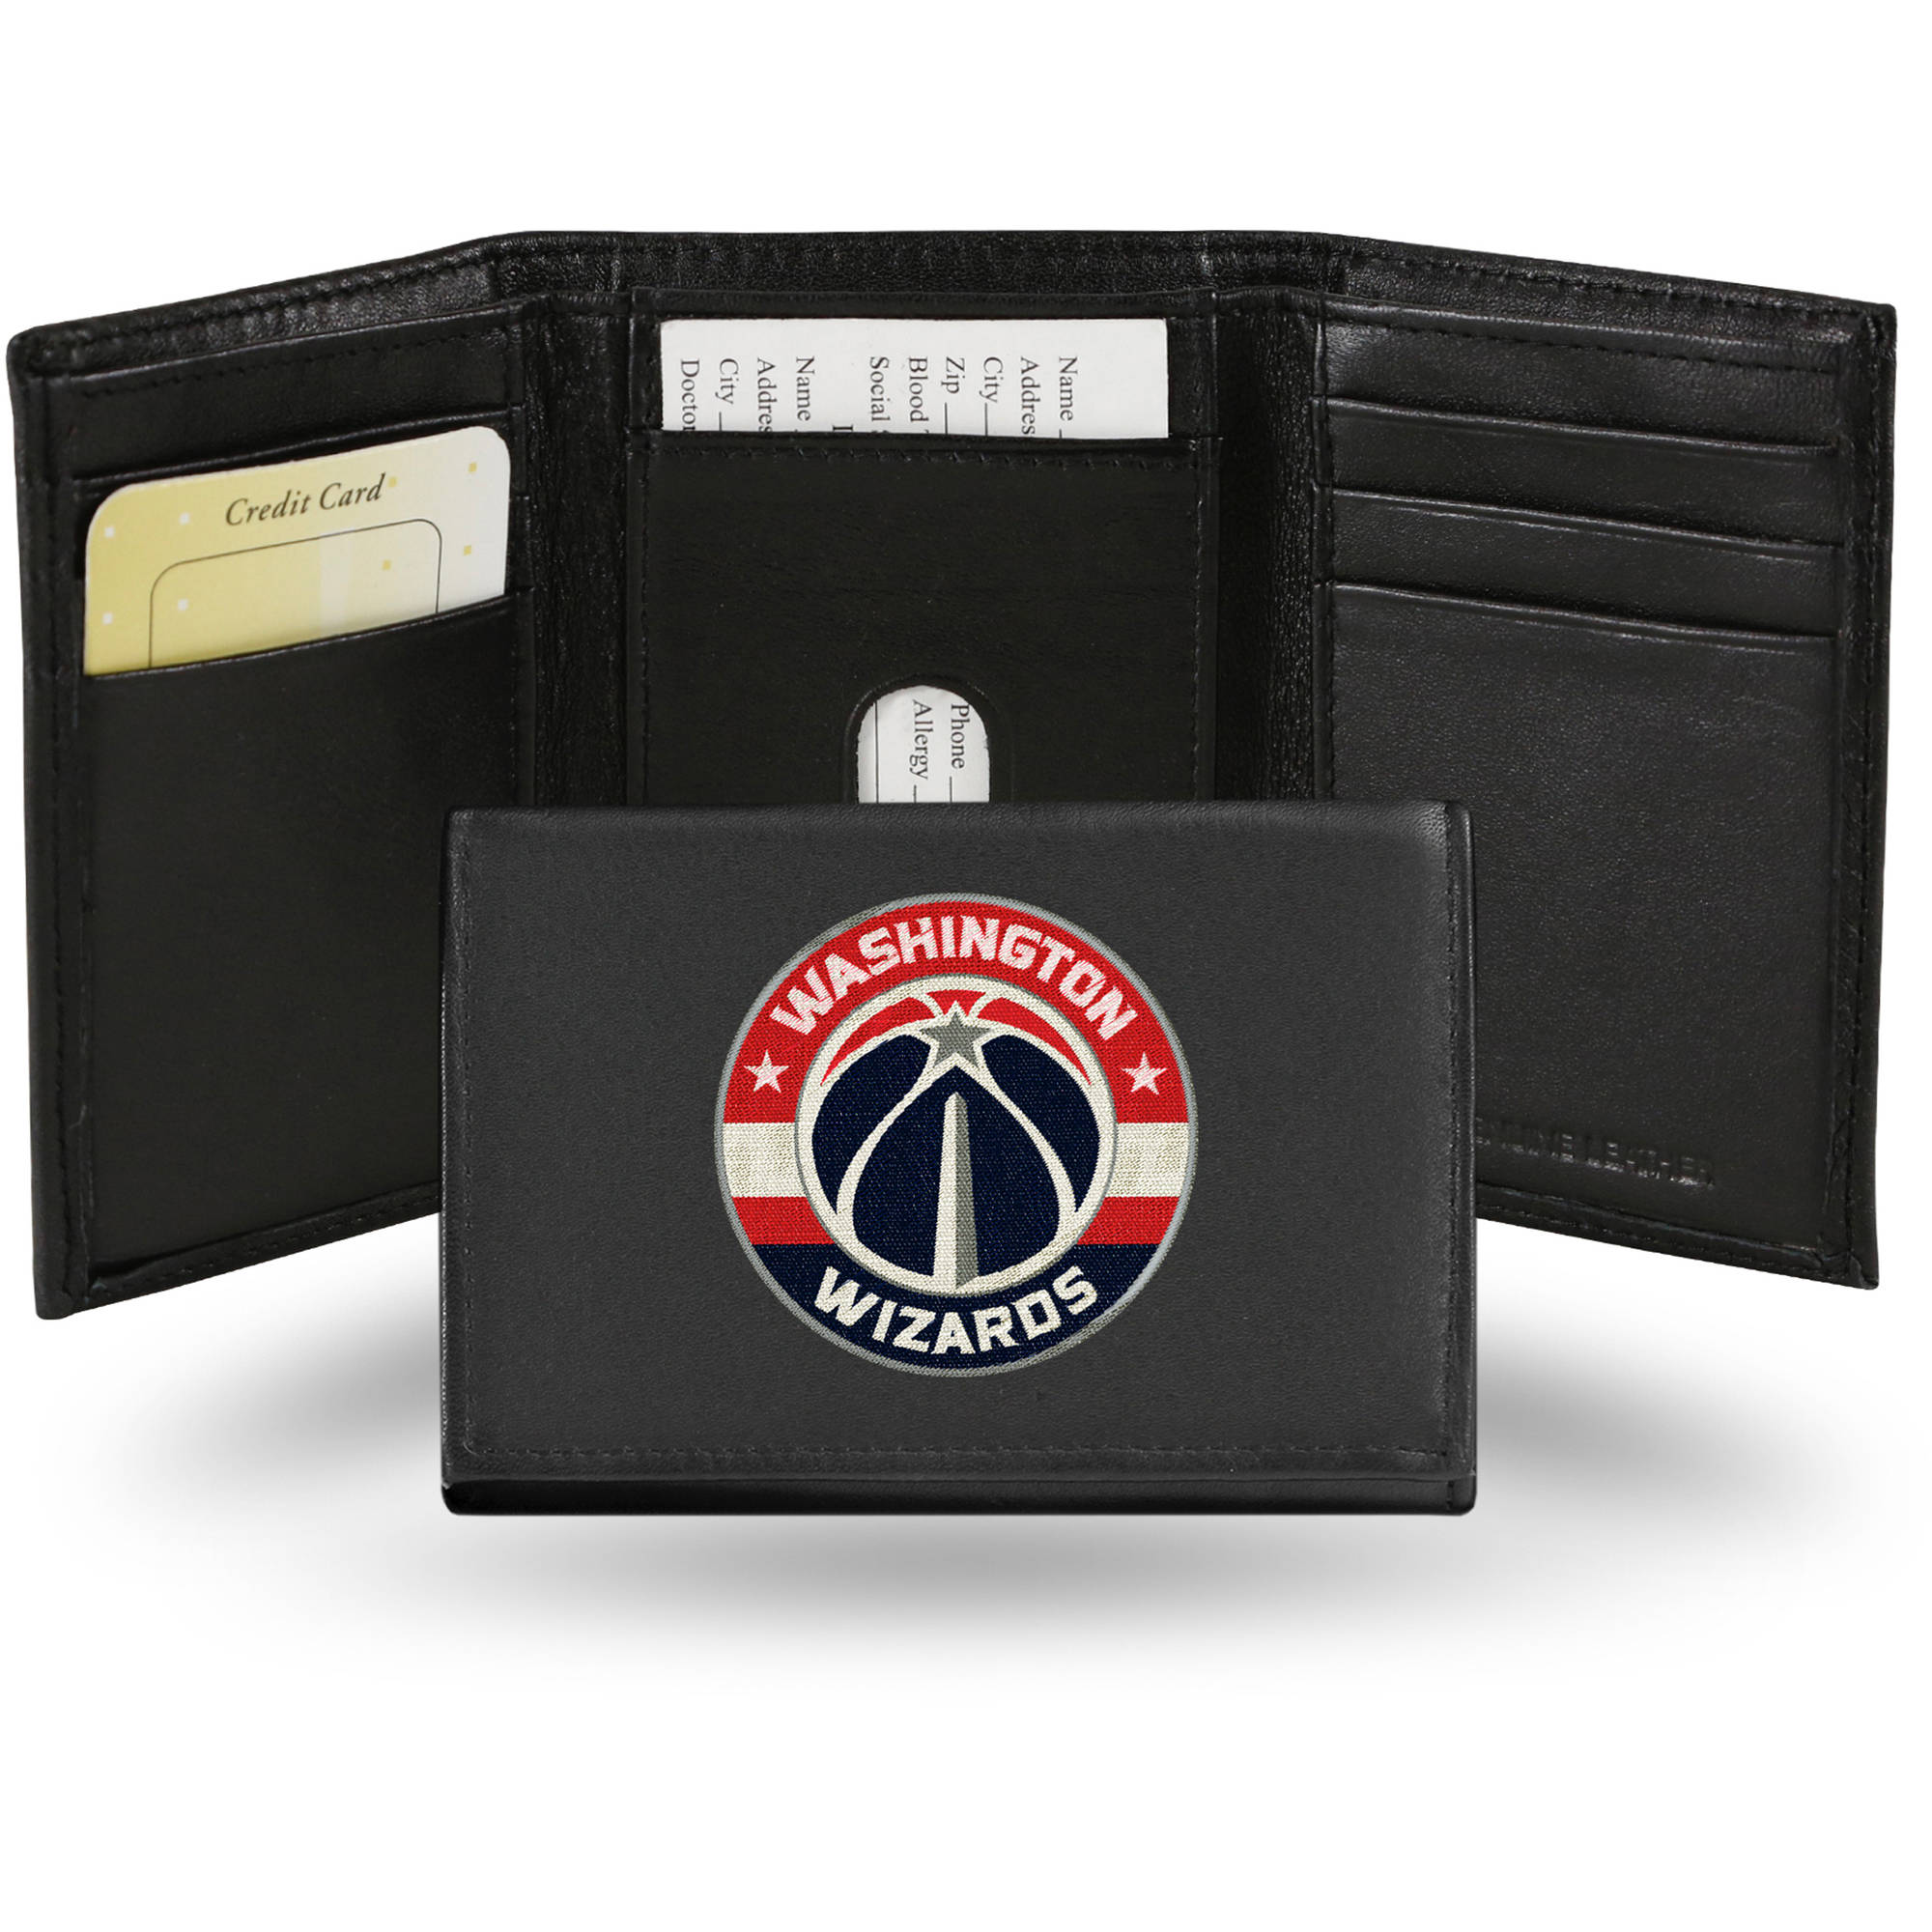 NBA - Men's Washington Wizards Embroidered Trifold Wallet